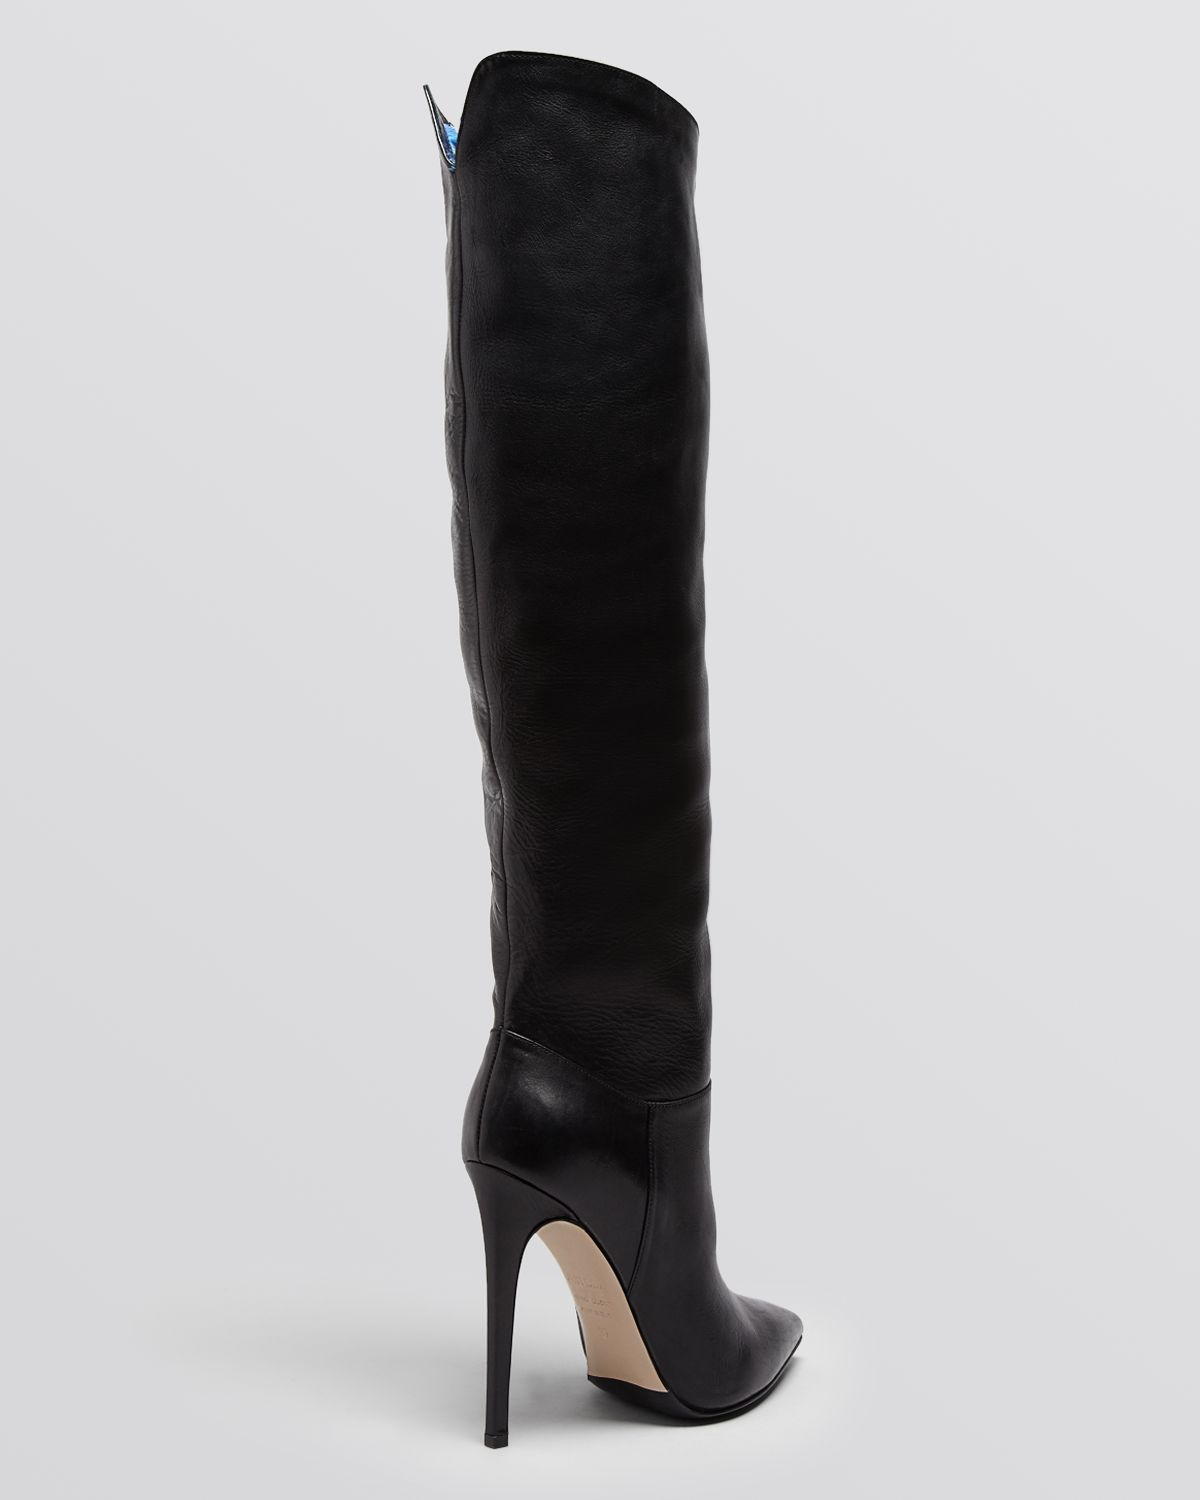 Le Silla Boots Lyst Le Silla Tall Pointed Toe High Heel Boots In Black